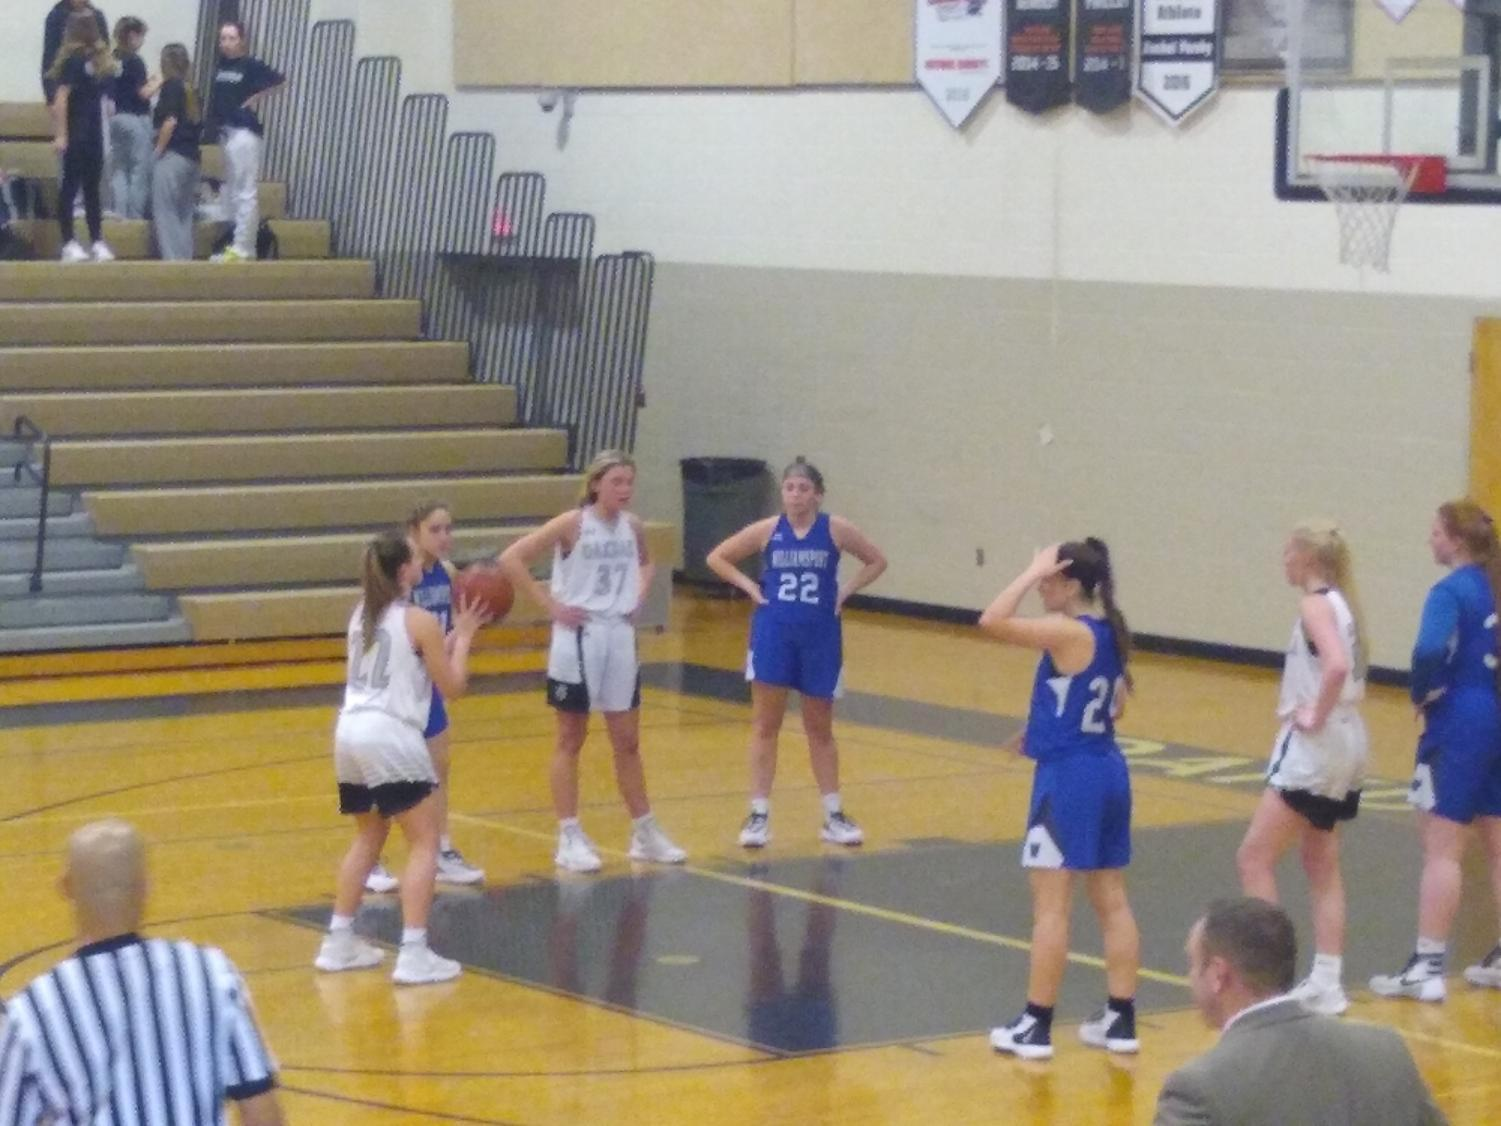 Point guard Nikki Etchison takes two free throws in the fourth quarter to save the game.